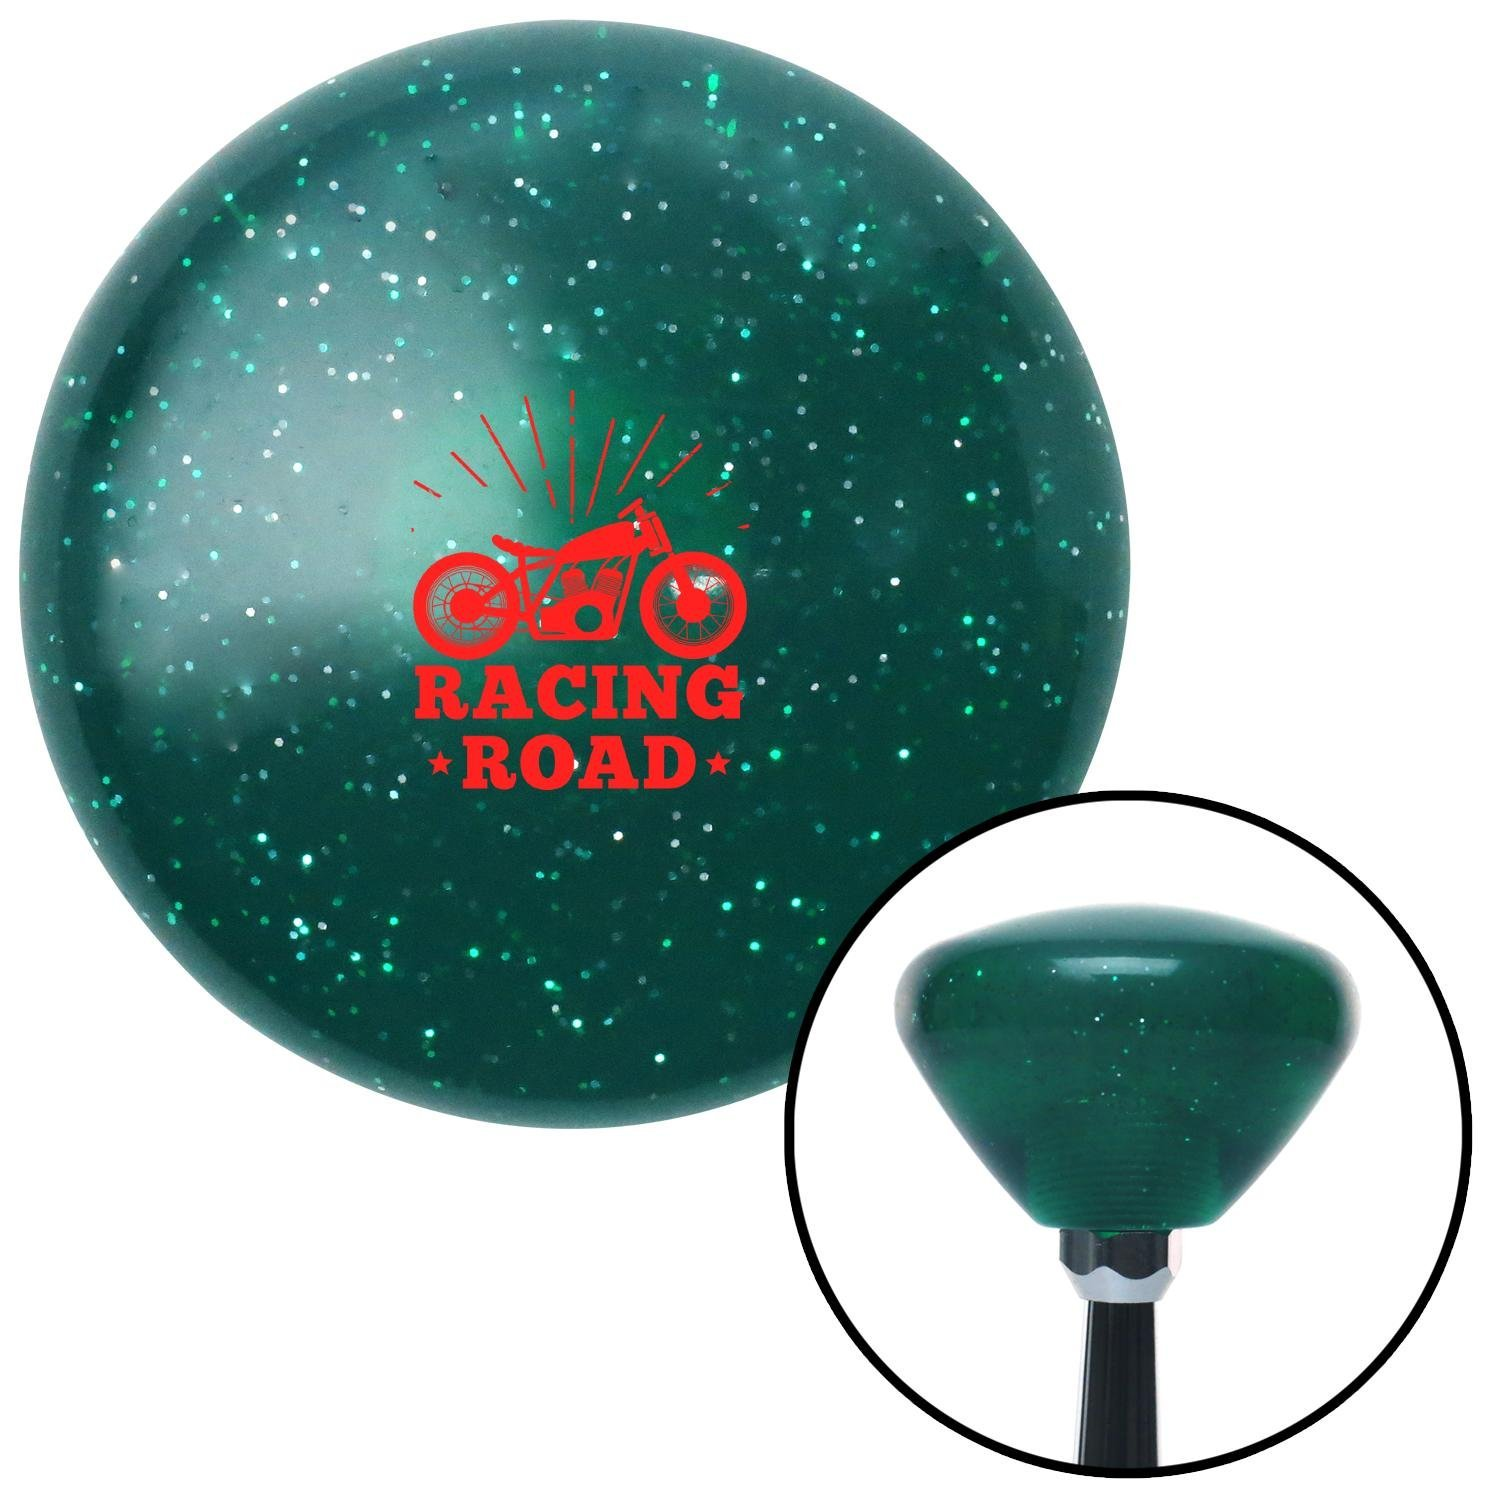 American Shifter 292001 Shift Knob Red Racing Road Green Retro Metal Flake with M16 x 1.5 Insert